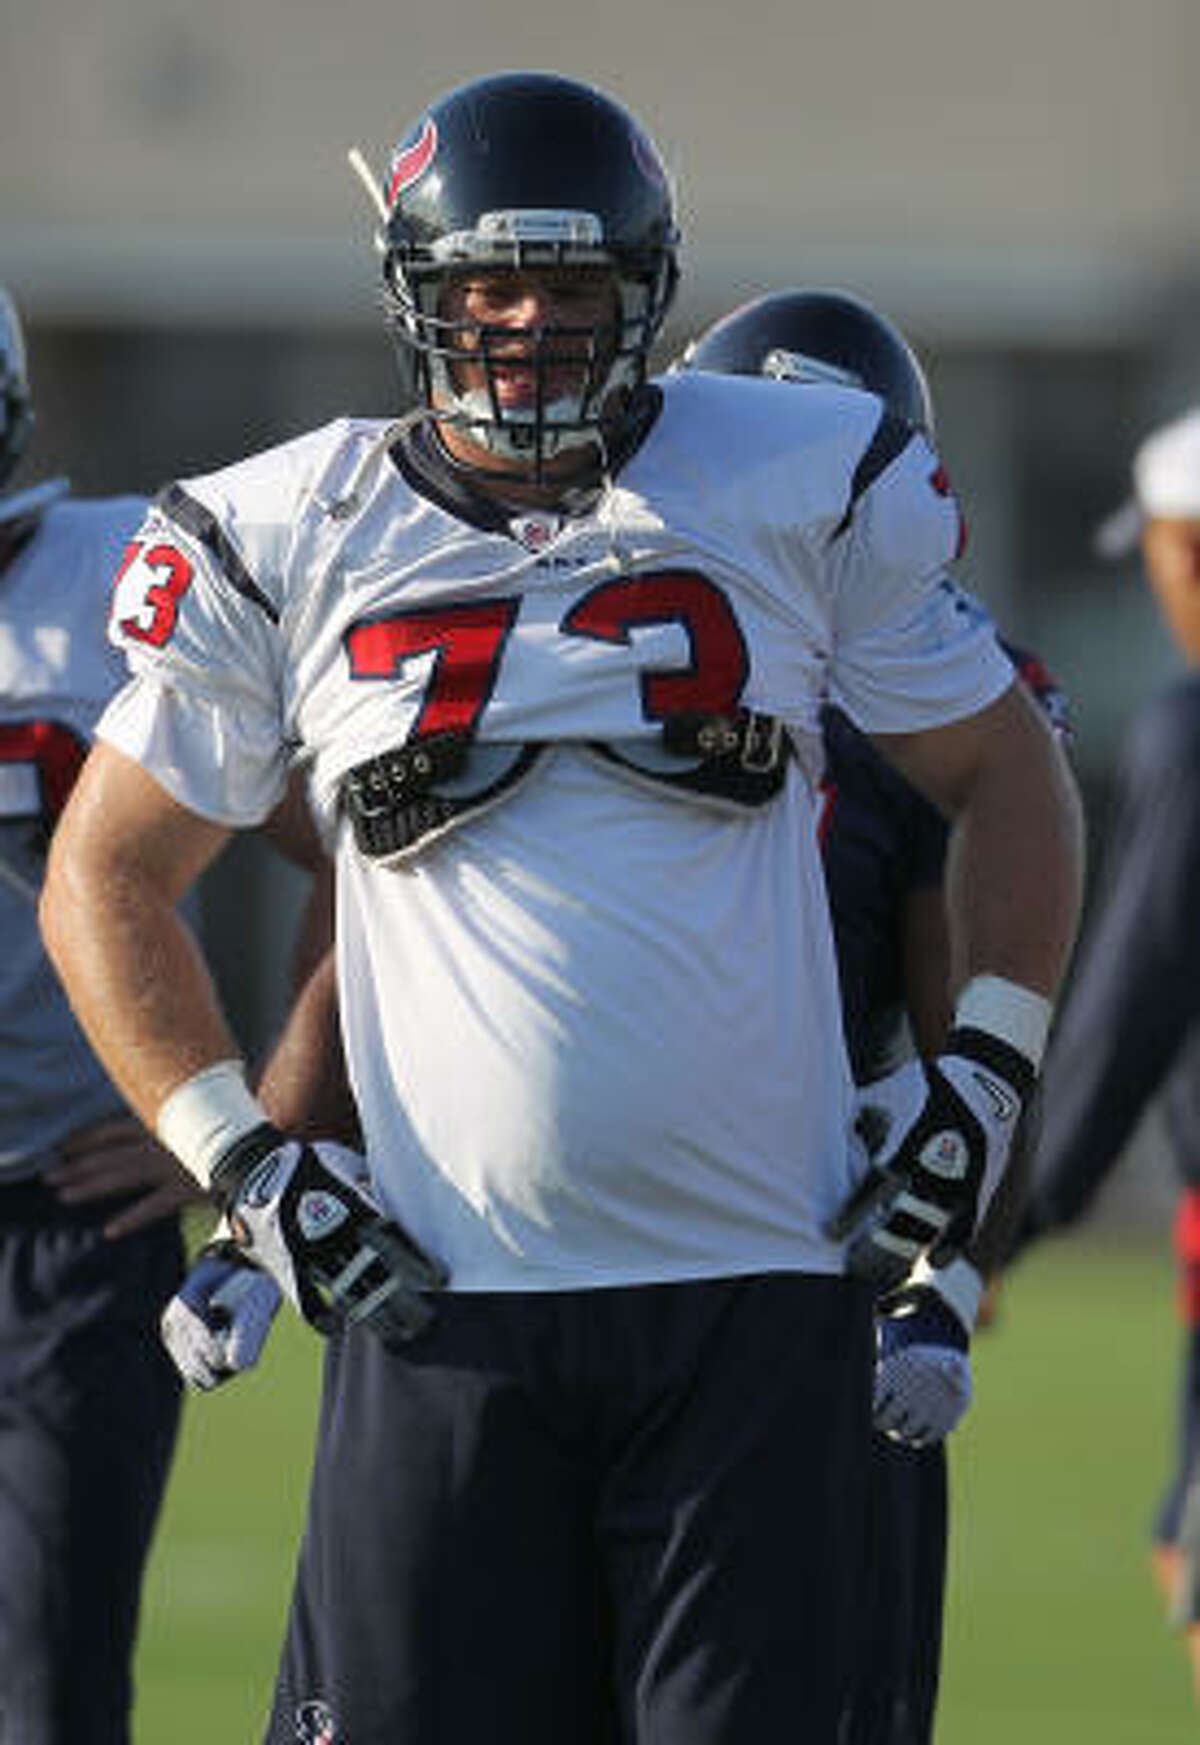 Texans tackle Eric Winston says he won't start a fight, but he won't back down if something involving his teammates is started.